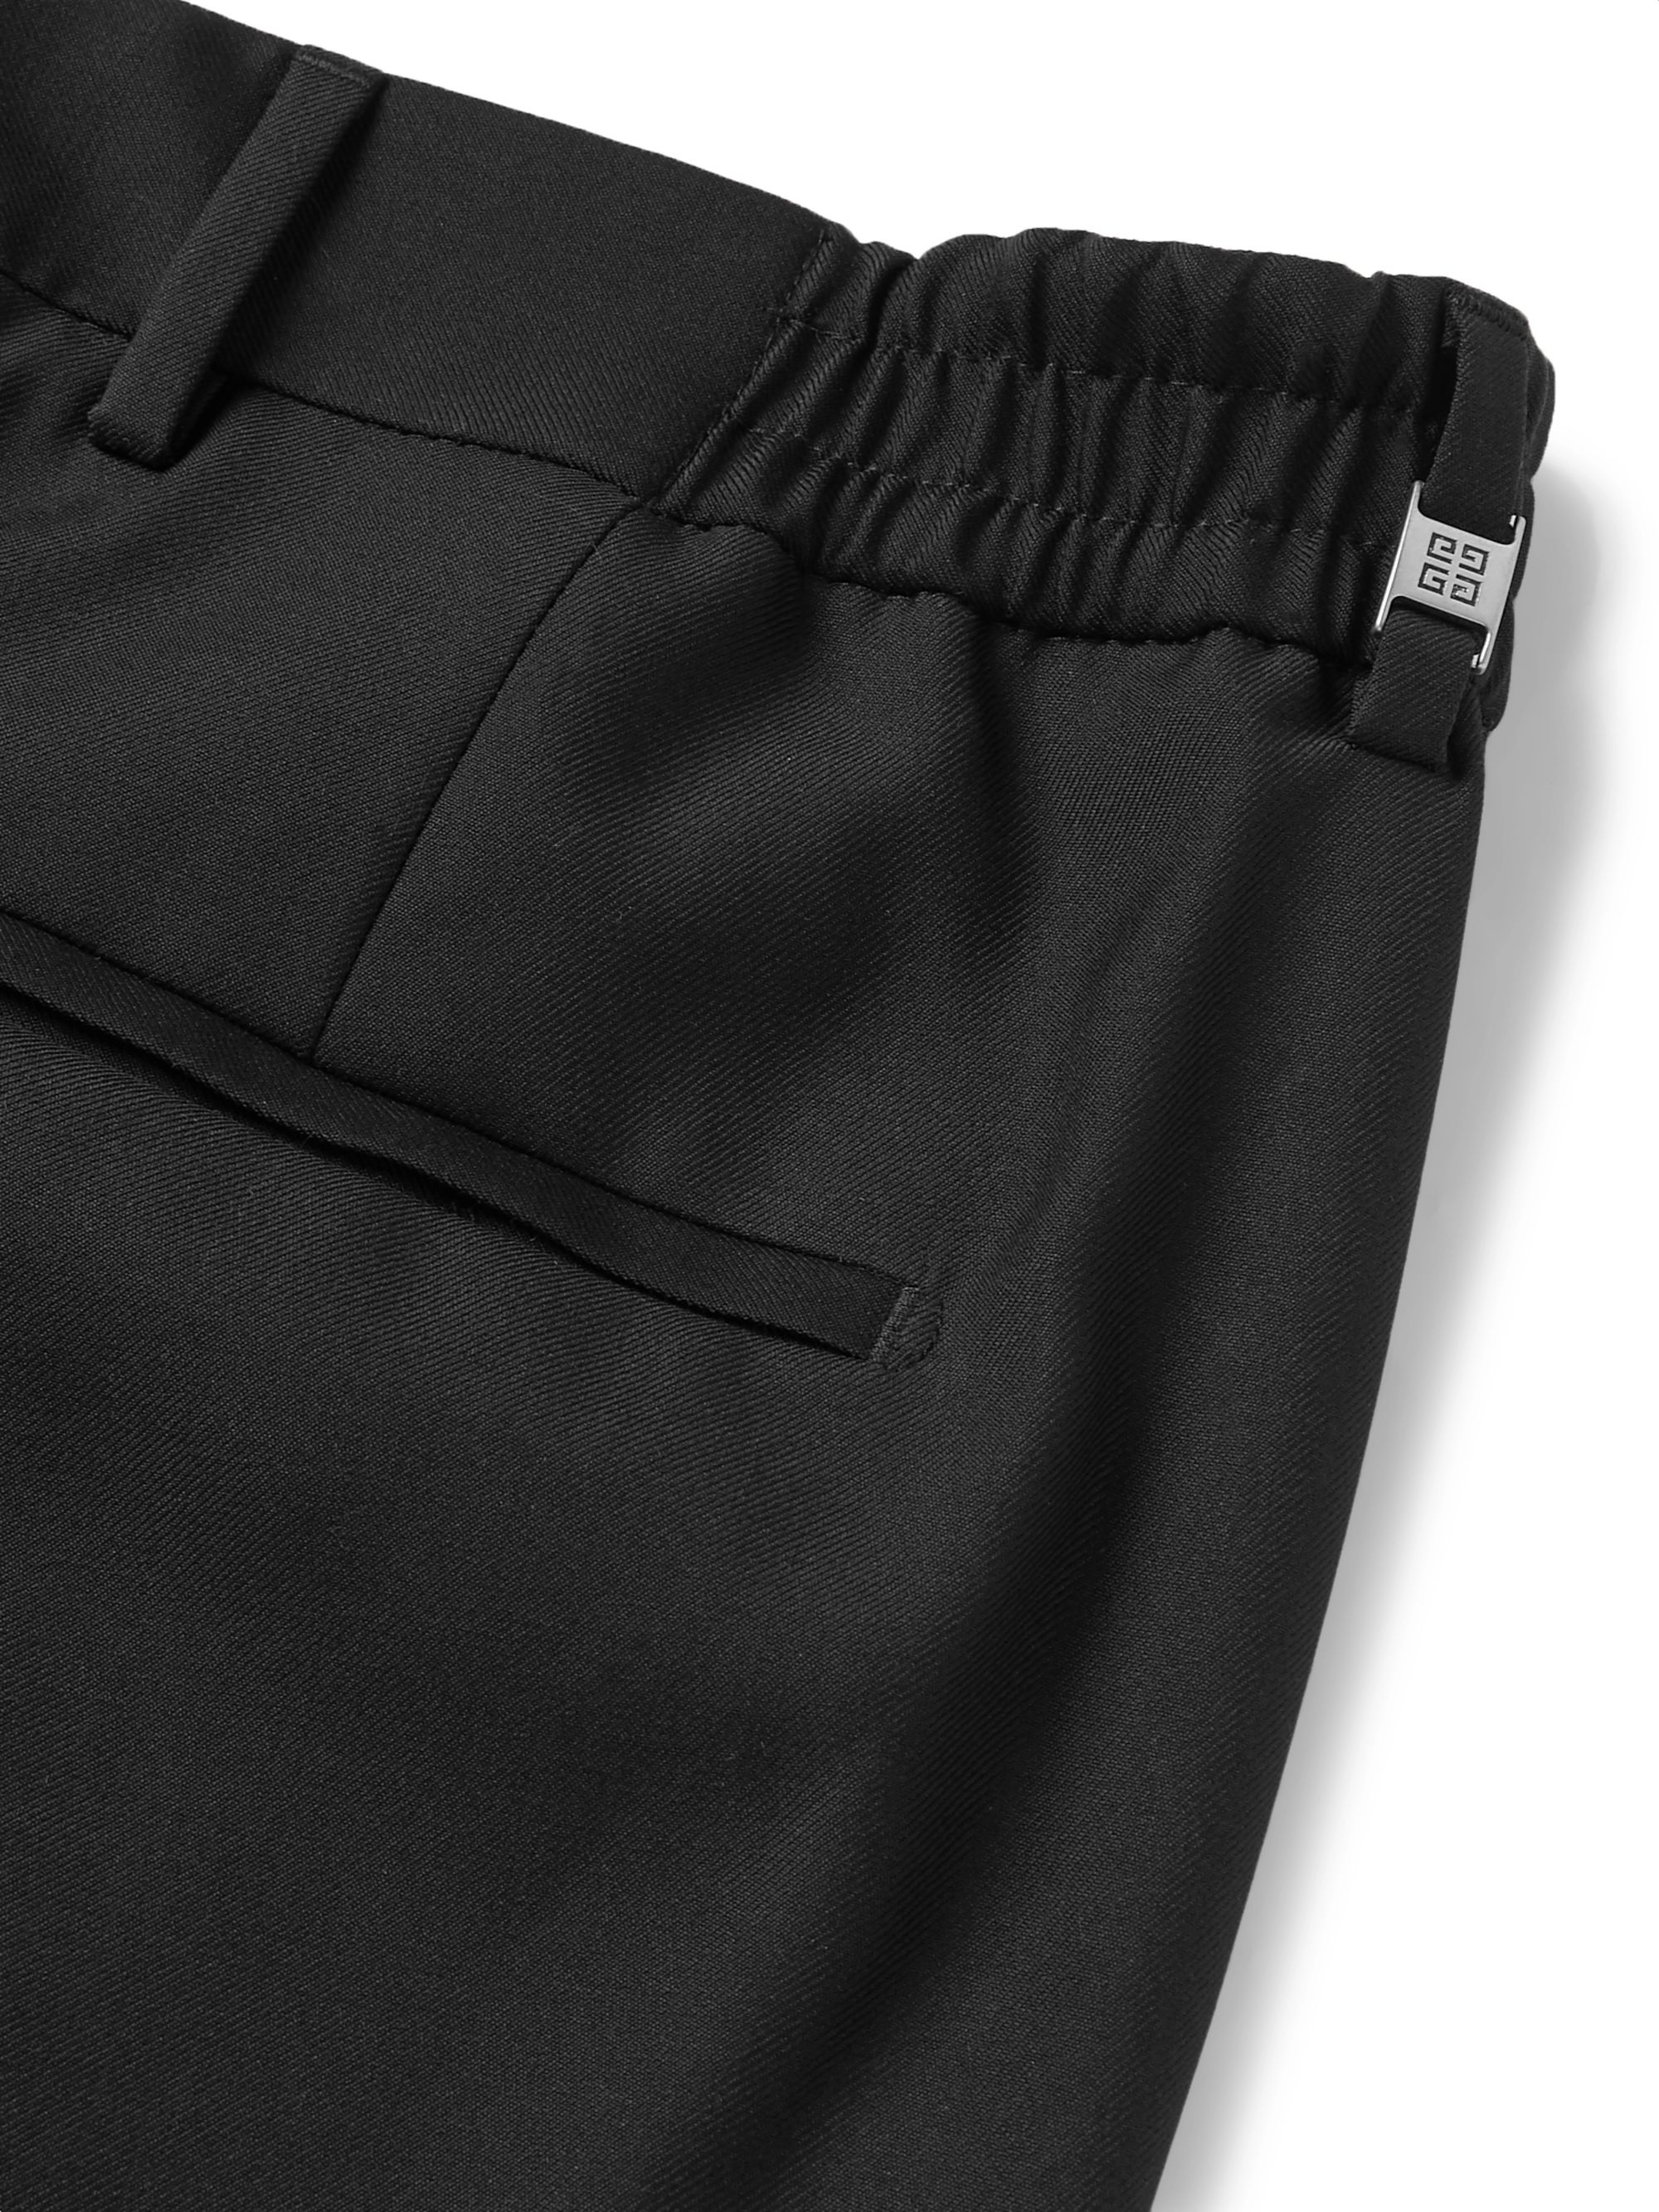 Givenchy Tapered Wool-Twill Trousers